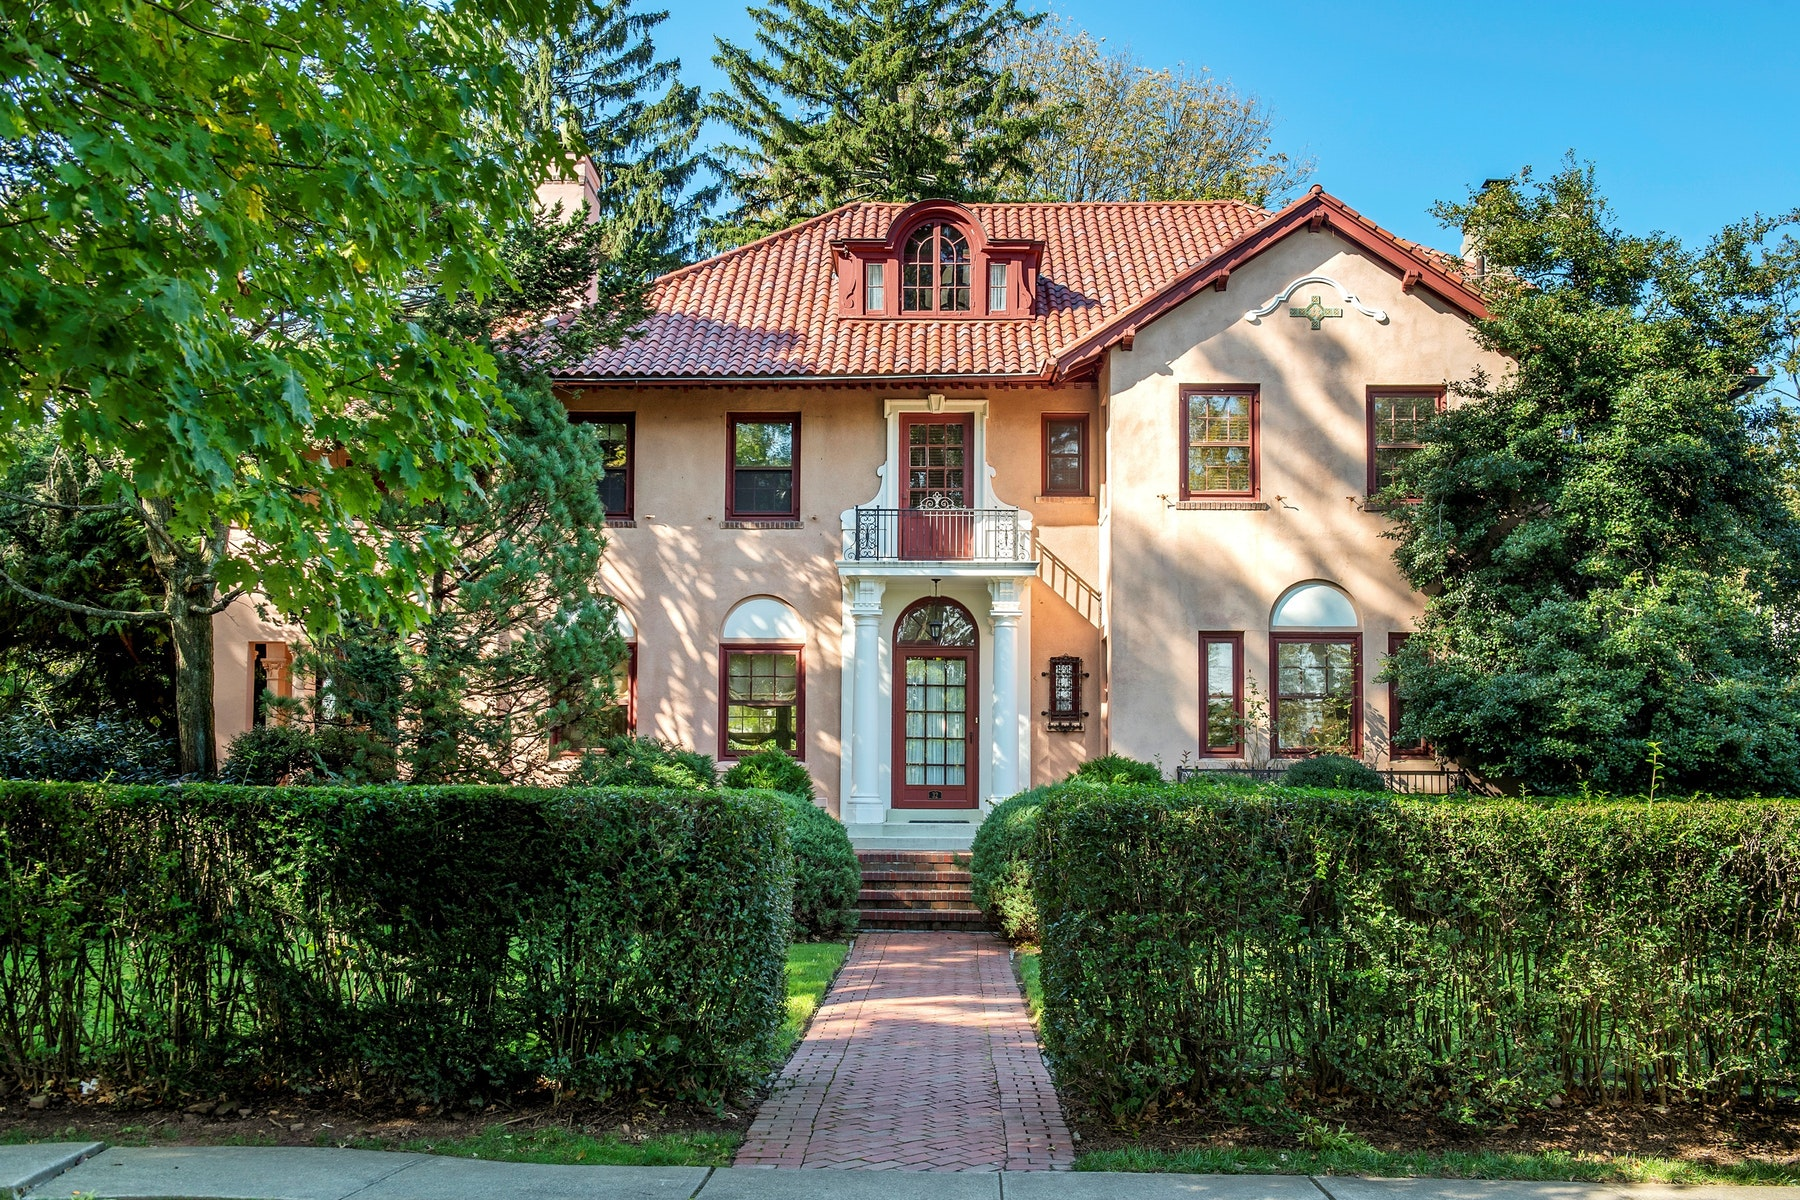 Single Family Home for Rent at Remarkably Beautiful Mediterranean 32 Edgemont Road, Montclair, New Jersey 07042 United States